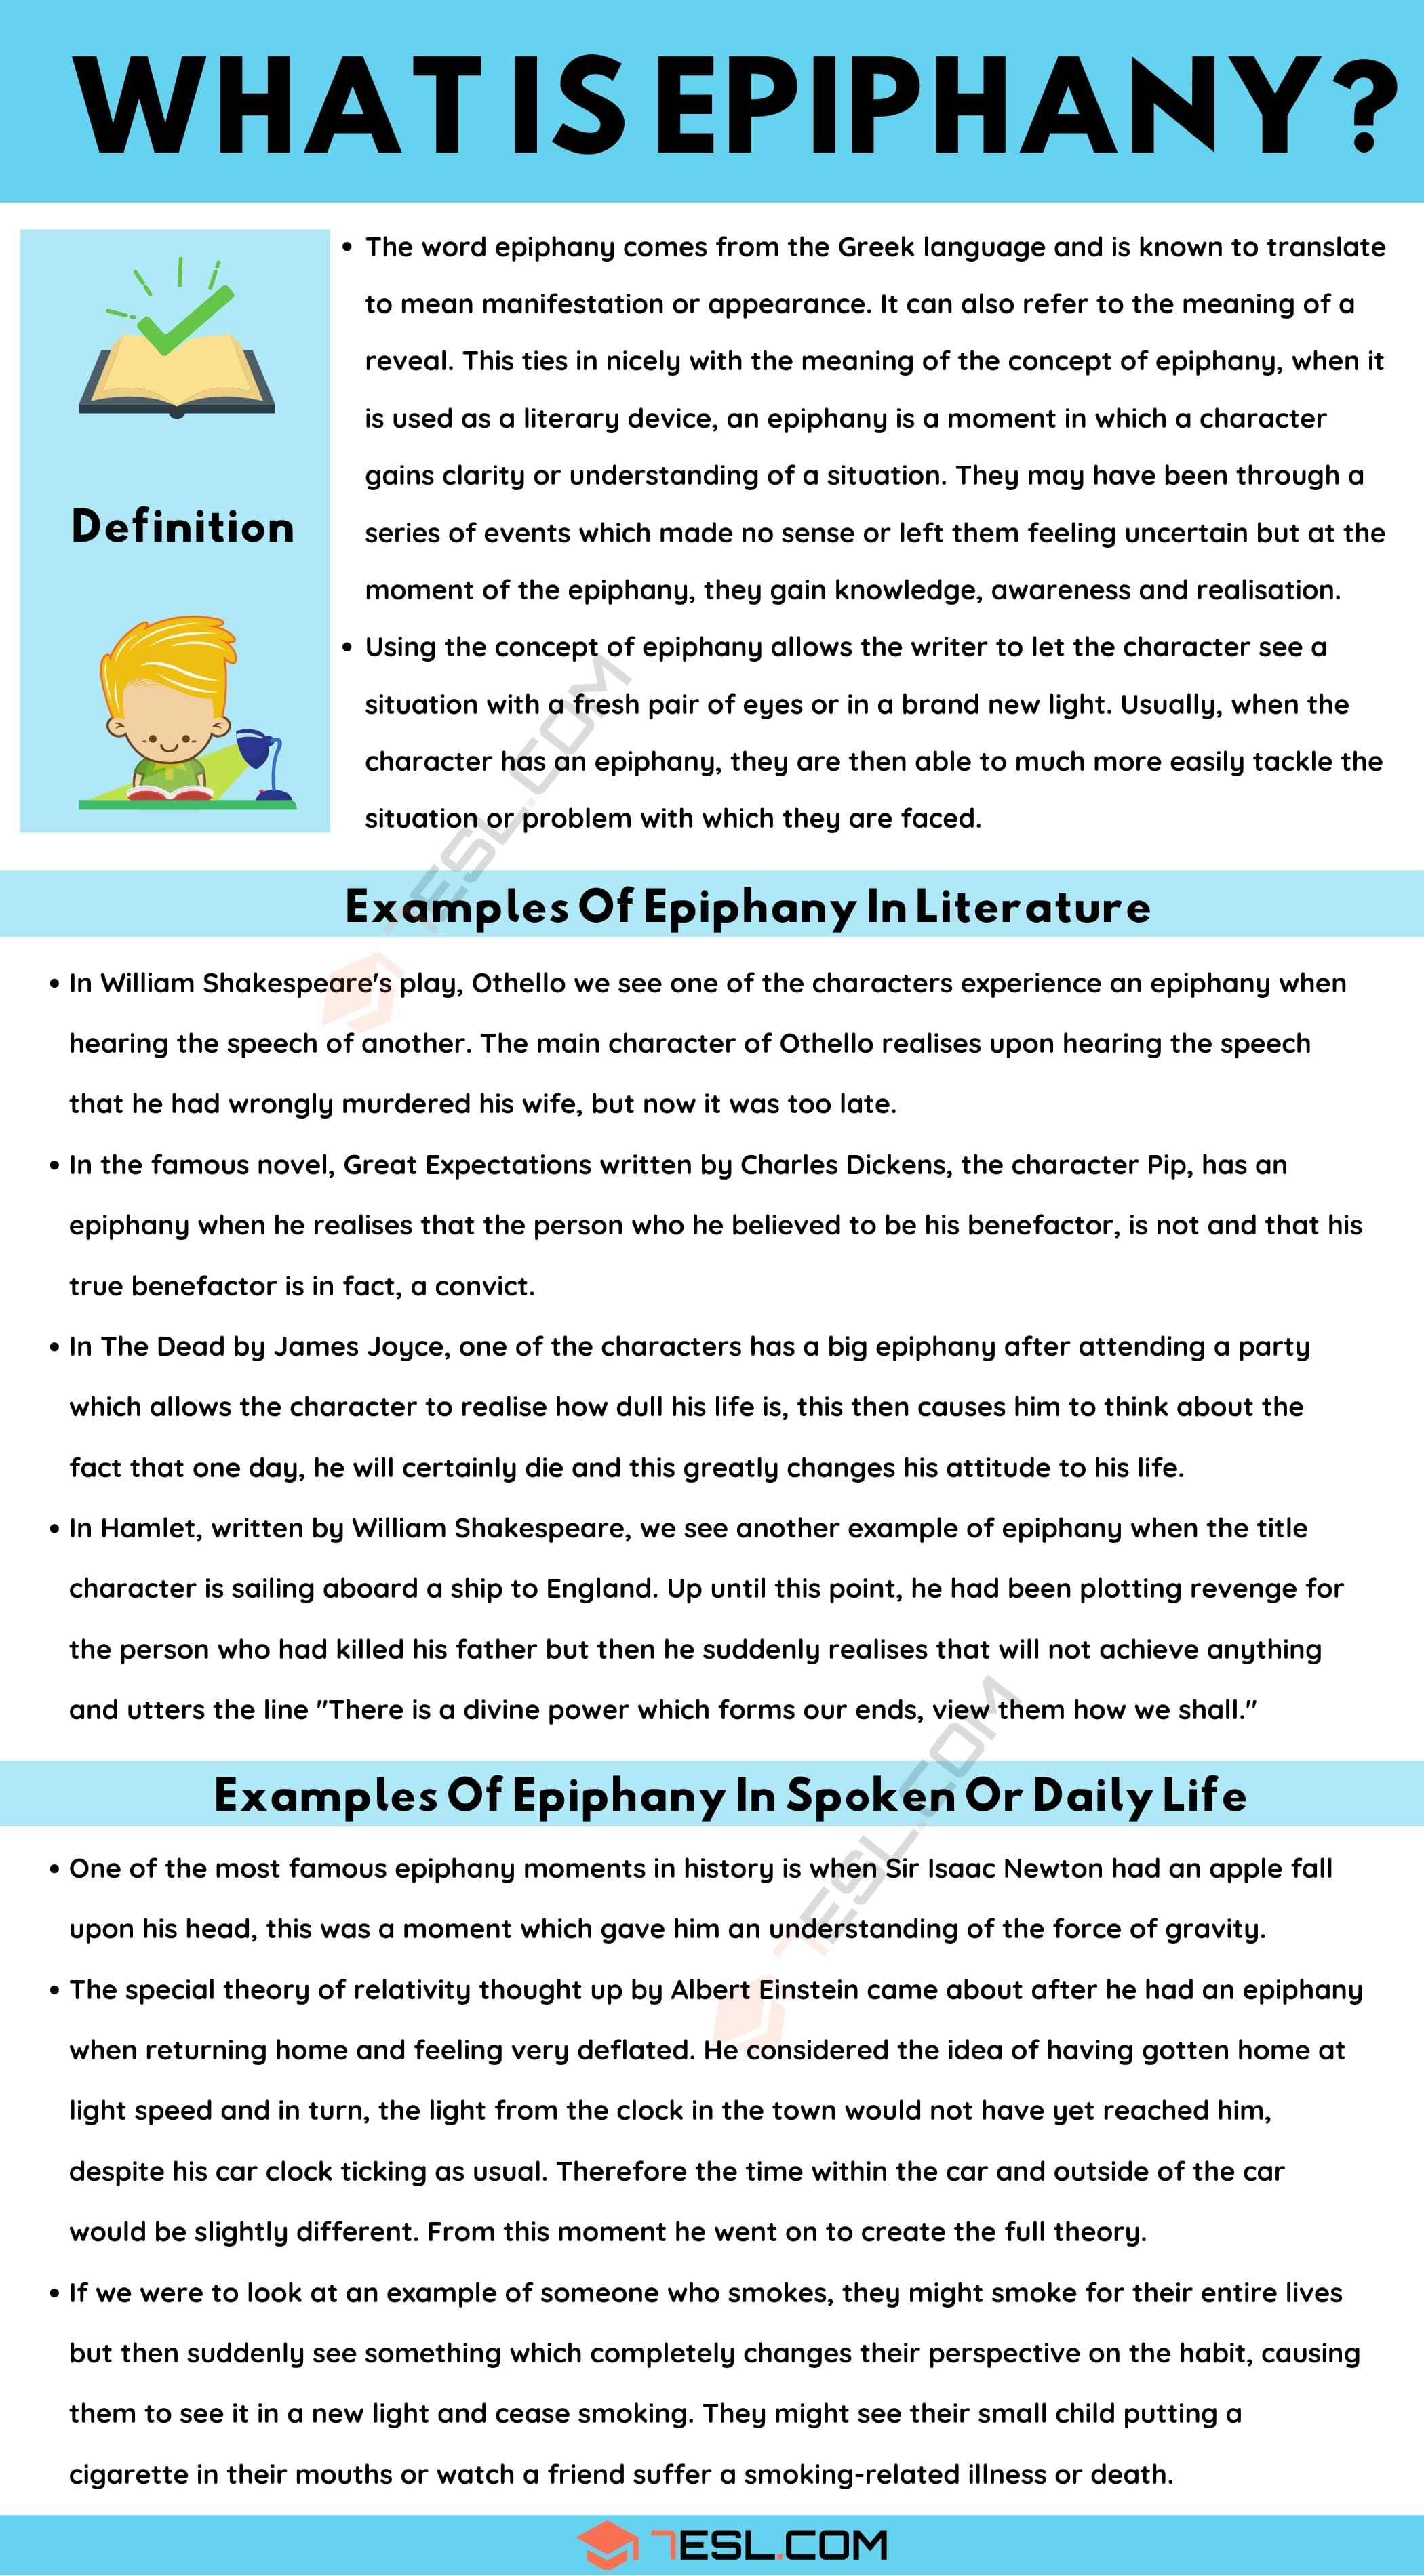 Epiphany Definition And Example In Spoken Language Literature 7esl 2021 Essay Writing Skill Teaching English Vocabulary Words On Smoking Cigarettes